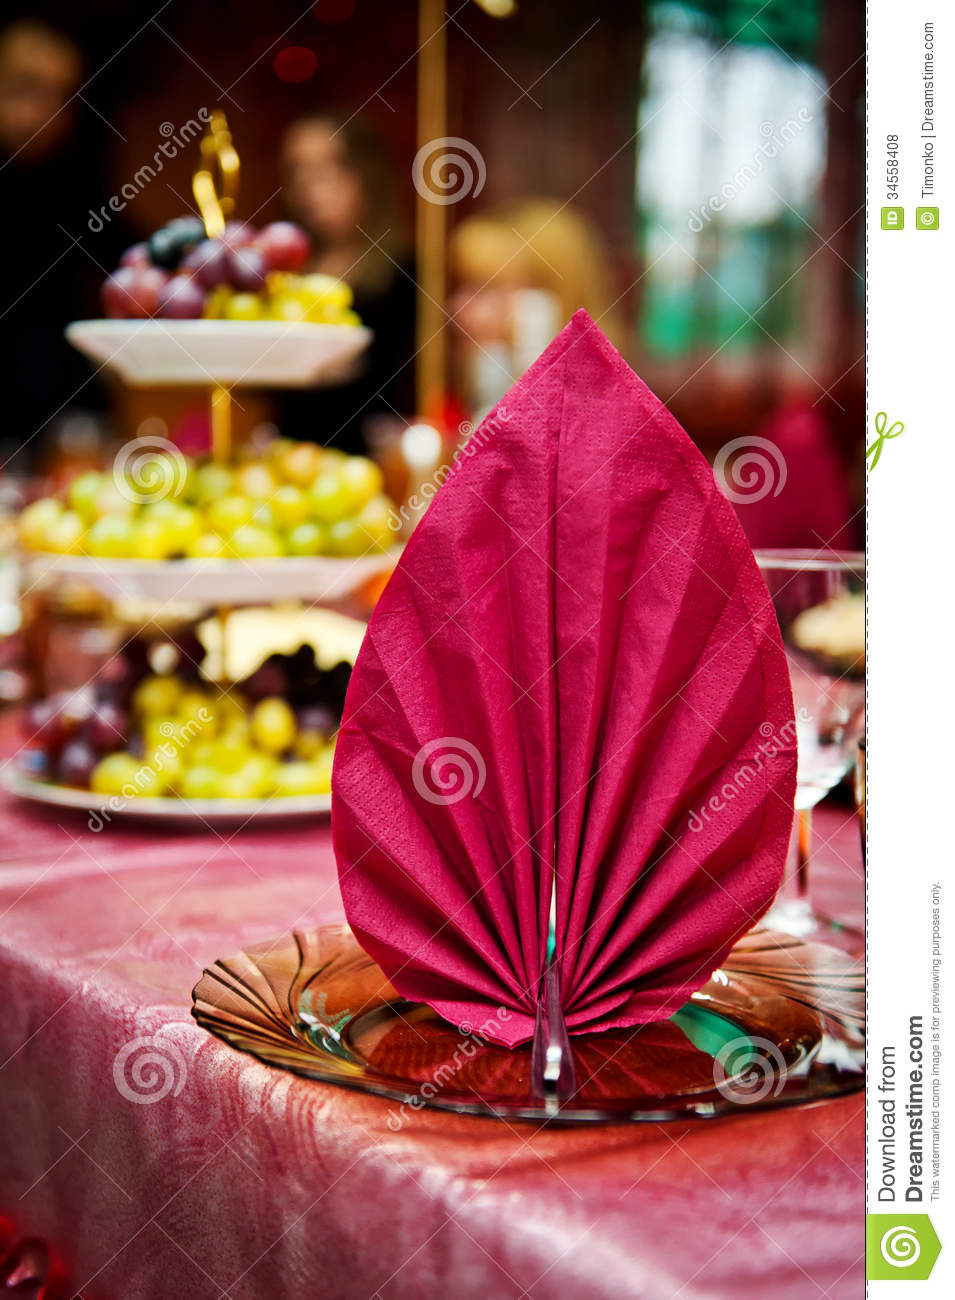 Bride Groom Table Decoration Wedding Table Bride And Groom Royalty Free Stock Photos Image